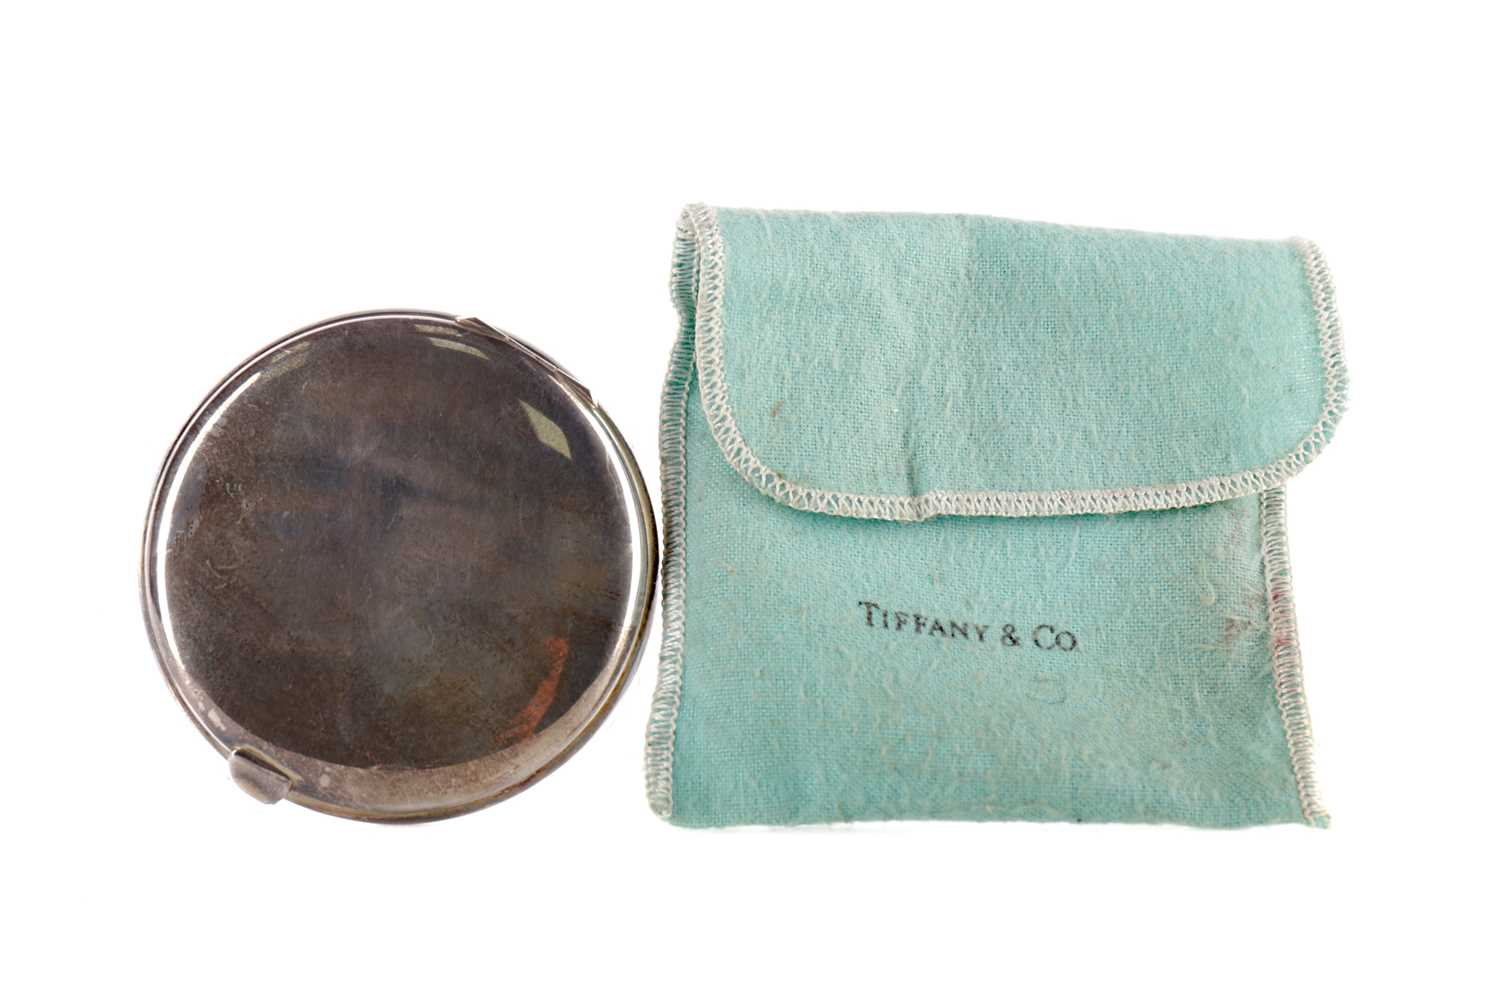 Lot 1709 - A STERLING SILVER CIRCULAR COMPACT BY TIFFANY & CO.